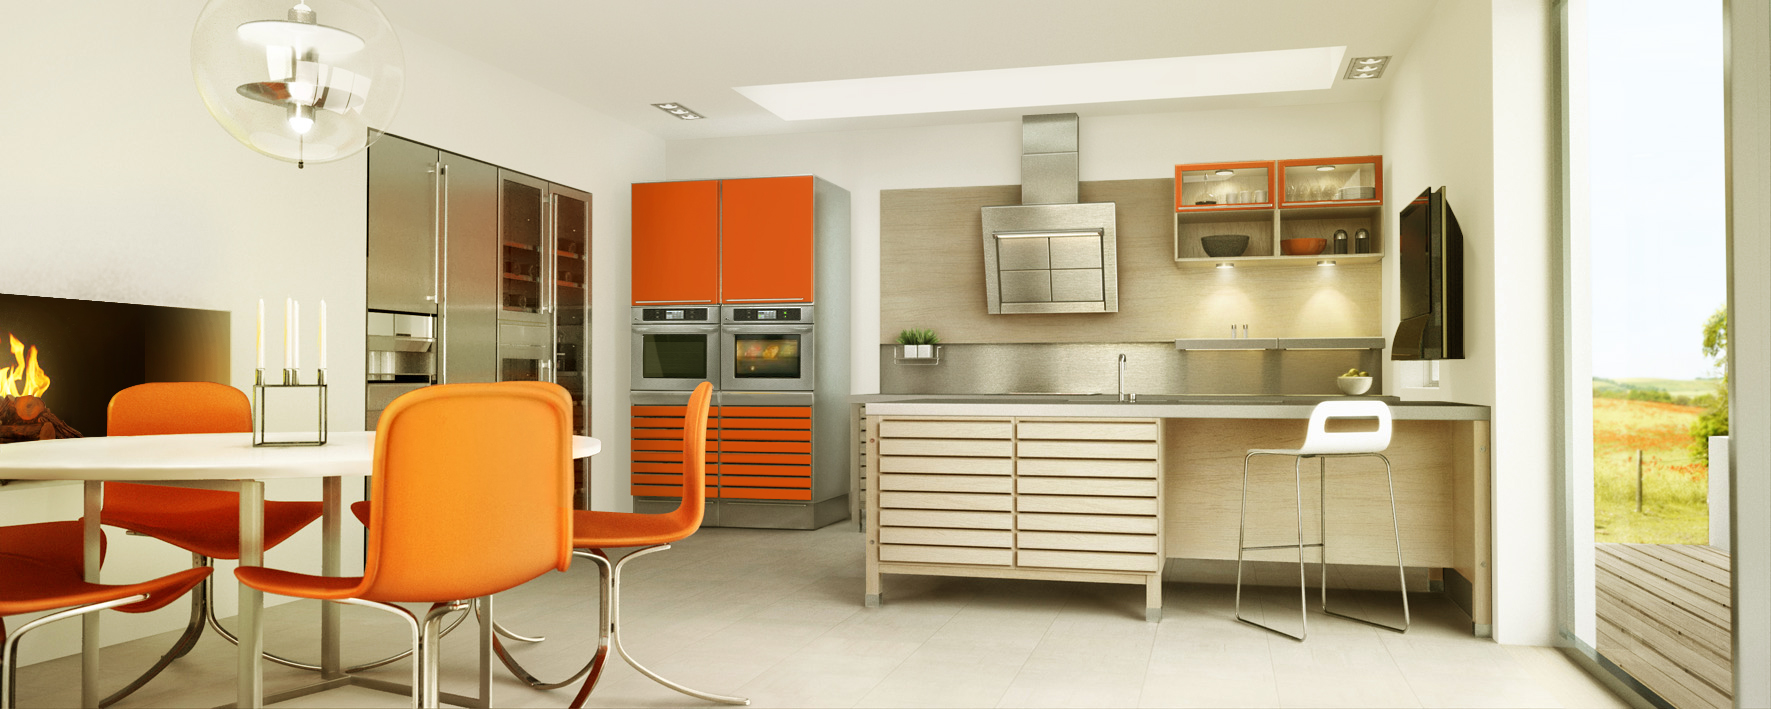 Kitchen_render